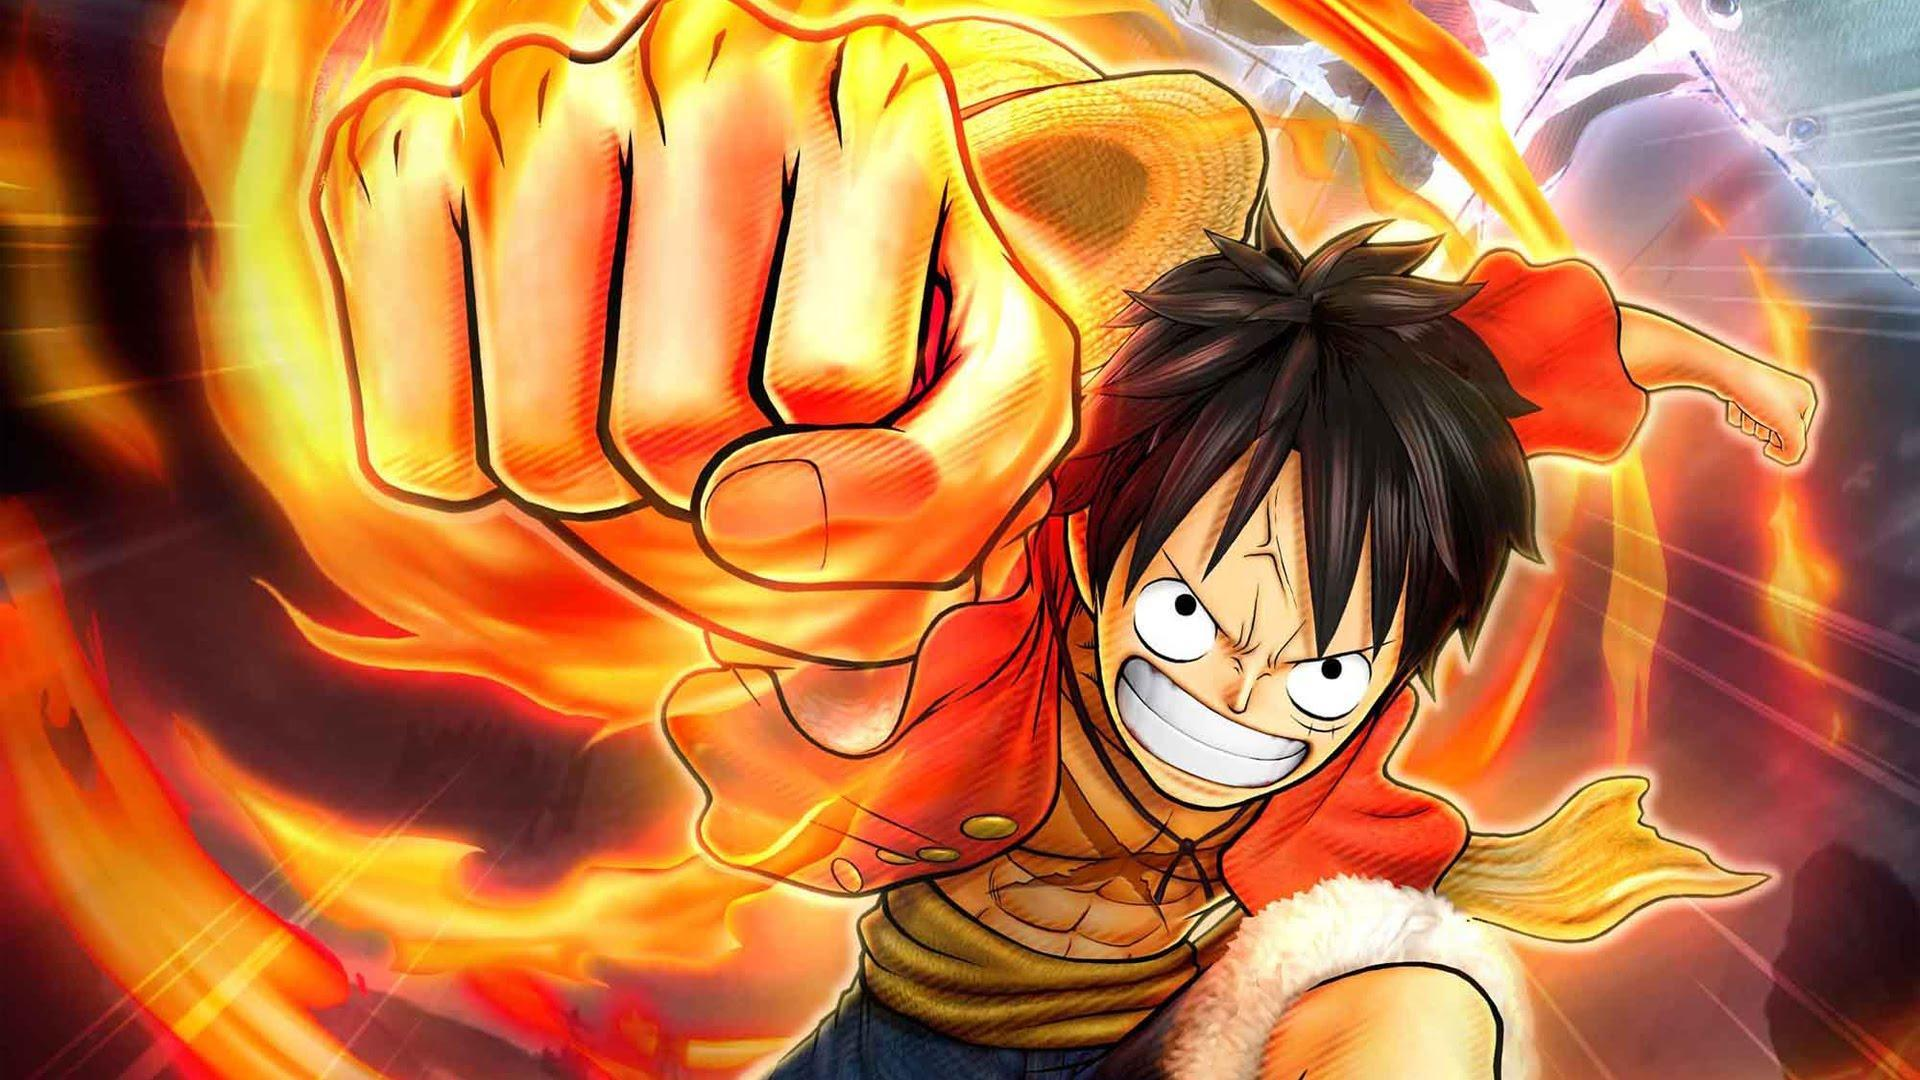 Luffy Art Wallpaper Hd For Android Apk Download